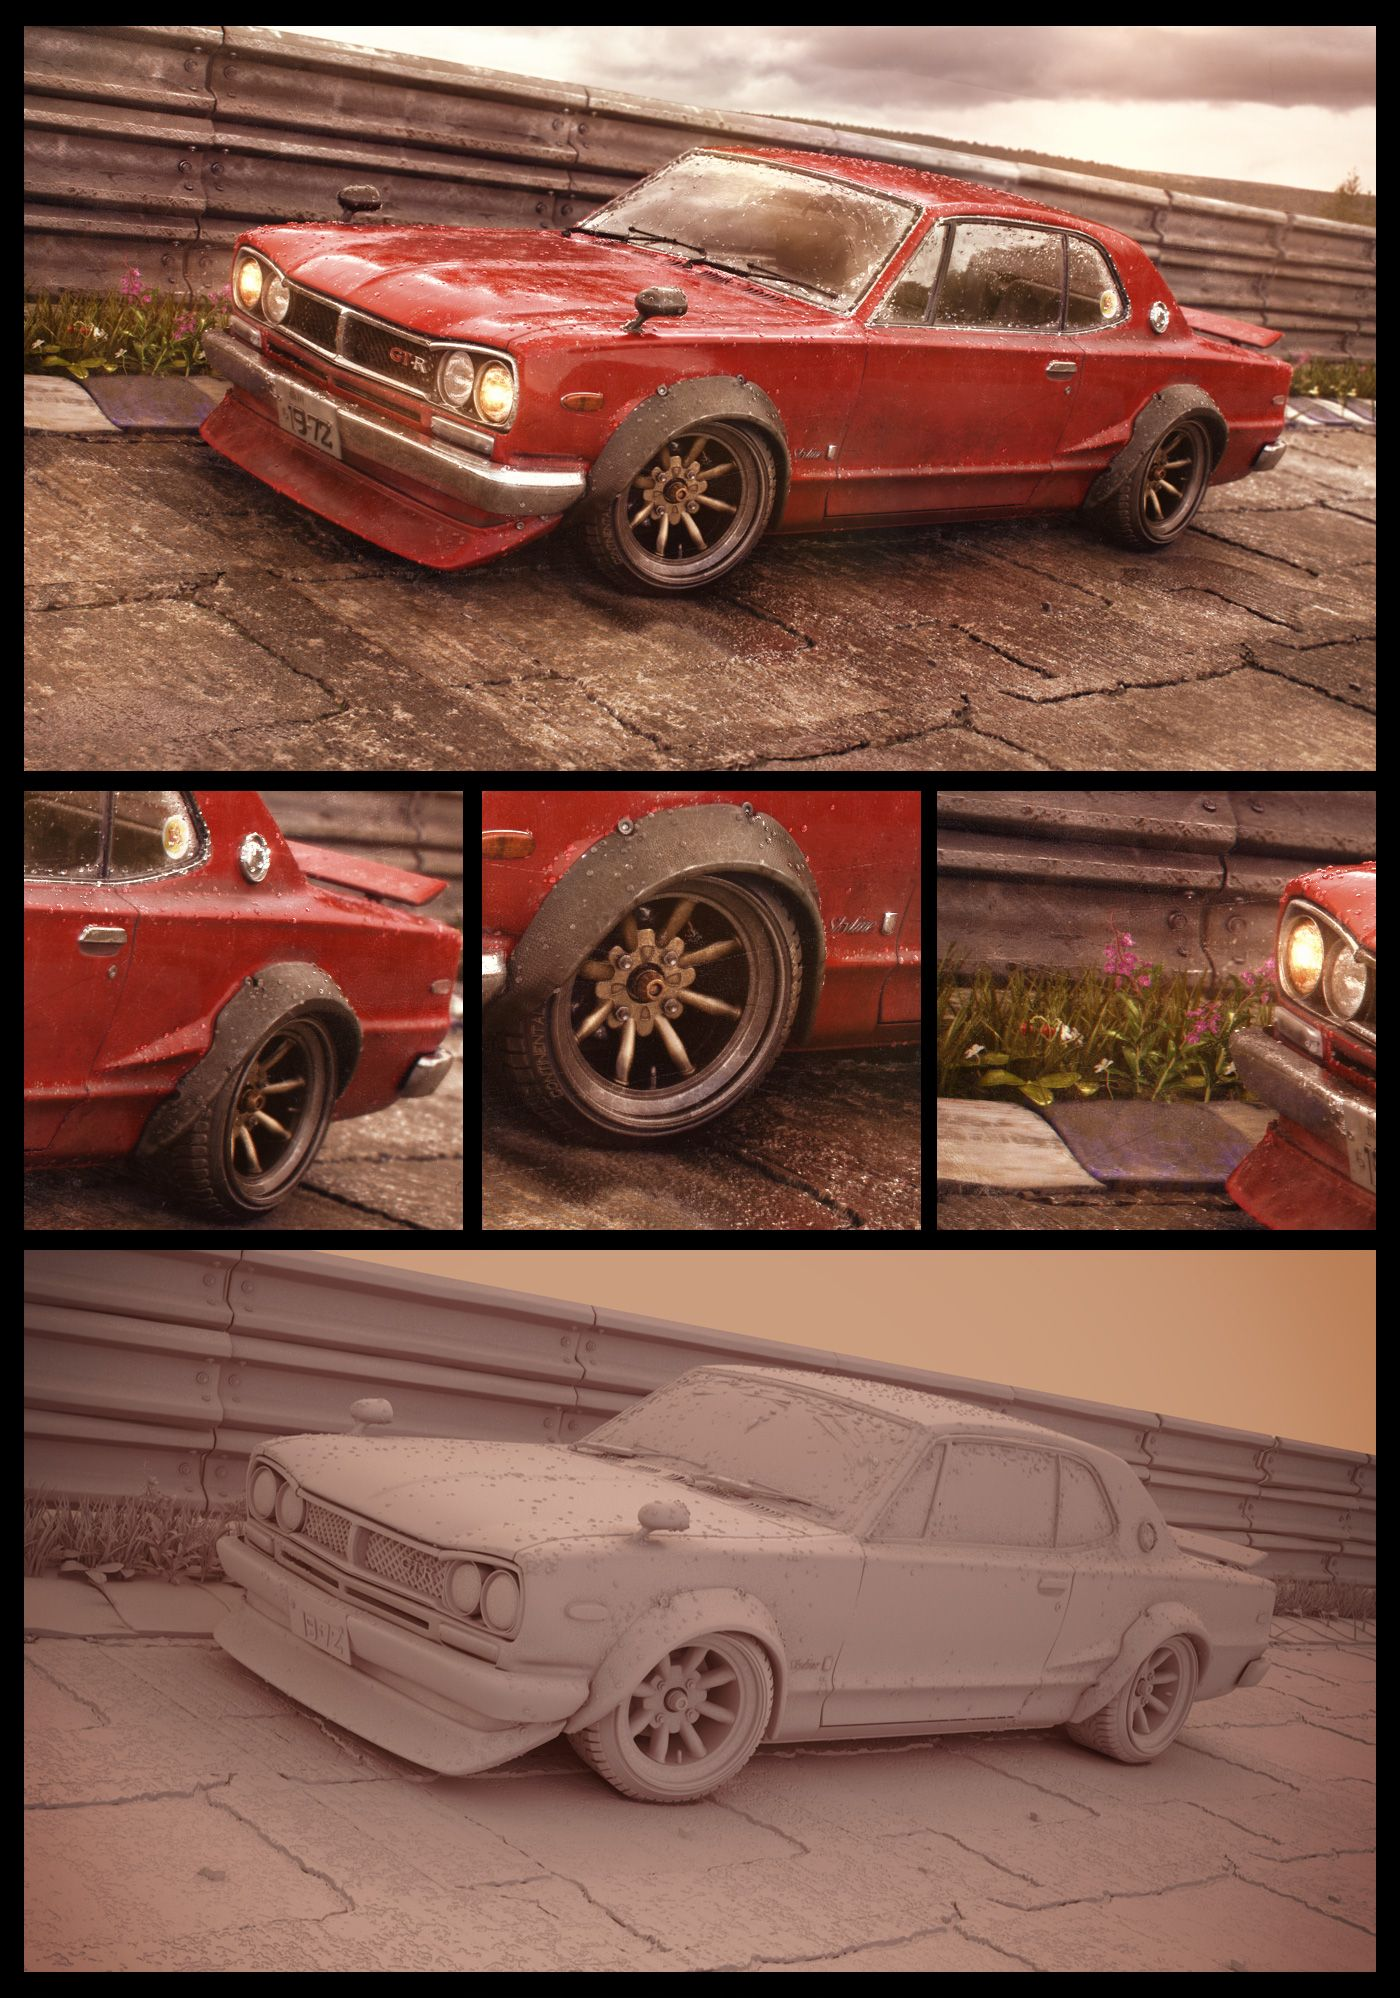 The Red Baron - Nissan Skyline -72 by Kimmokaunela.deviantart.com on @DeviantArt